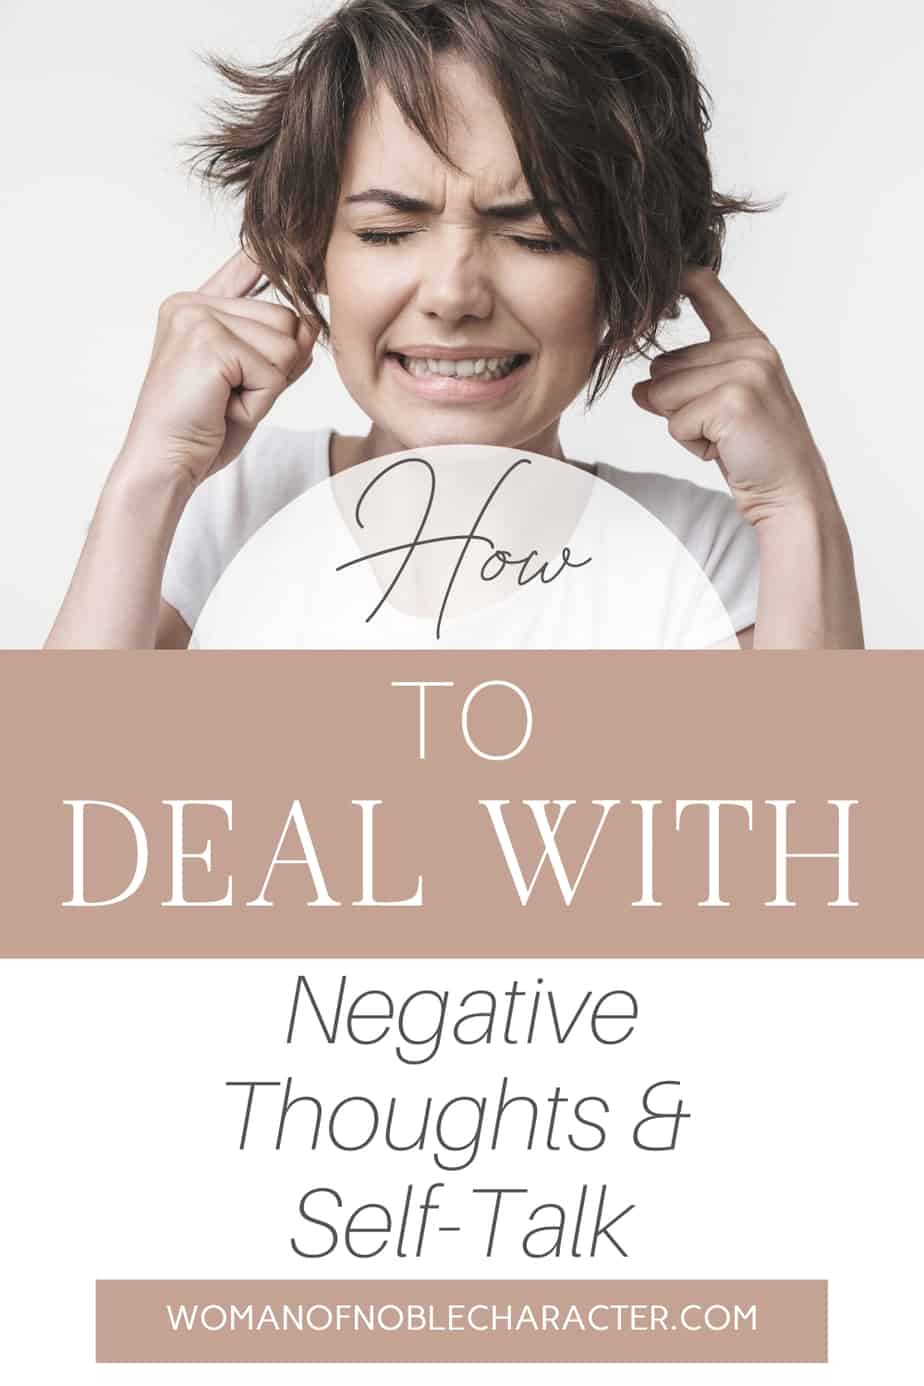 An image of a woman with an anxious face and her fingers in her ears and a text overlay that says How to Deal with Negative Thoughts and Self-Talk